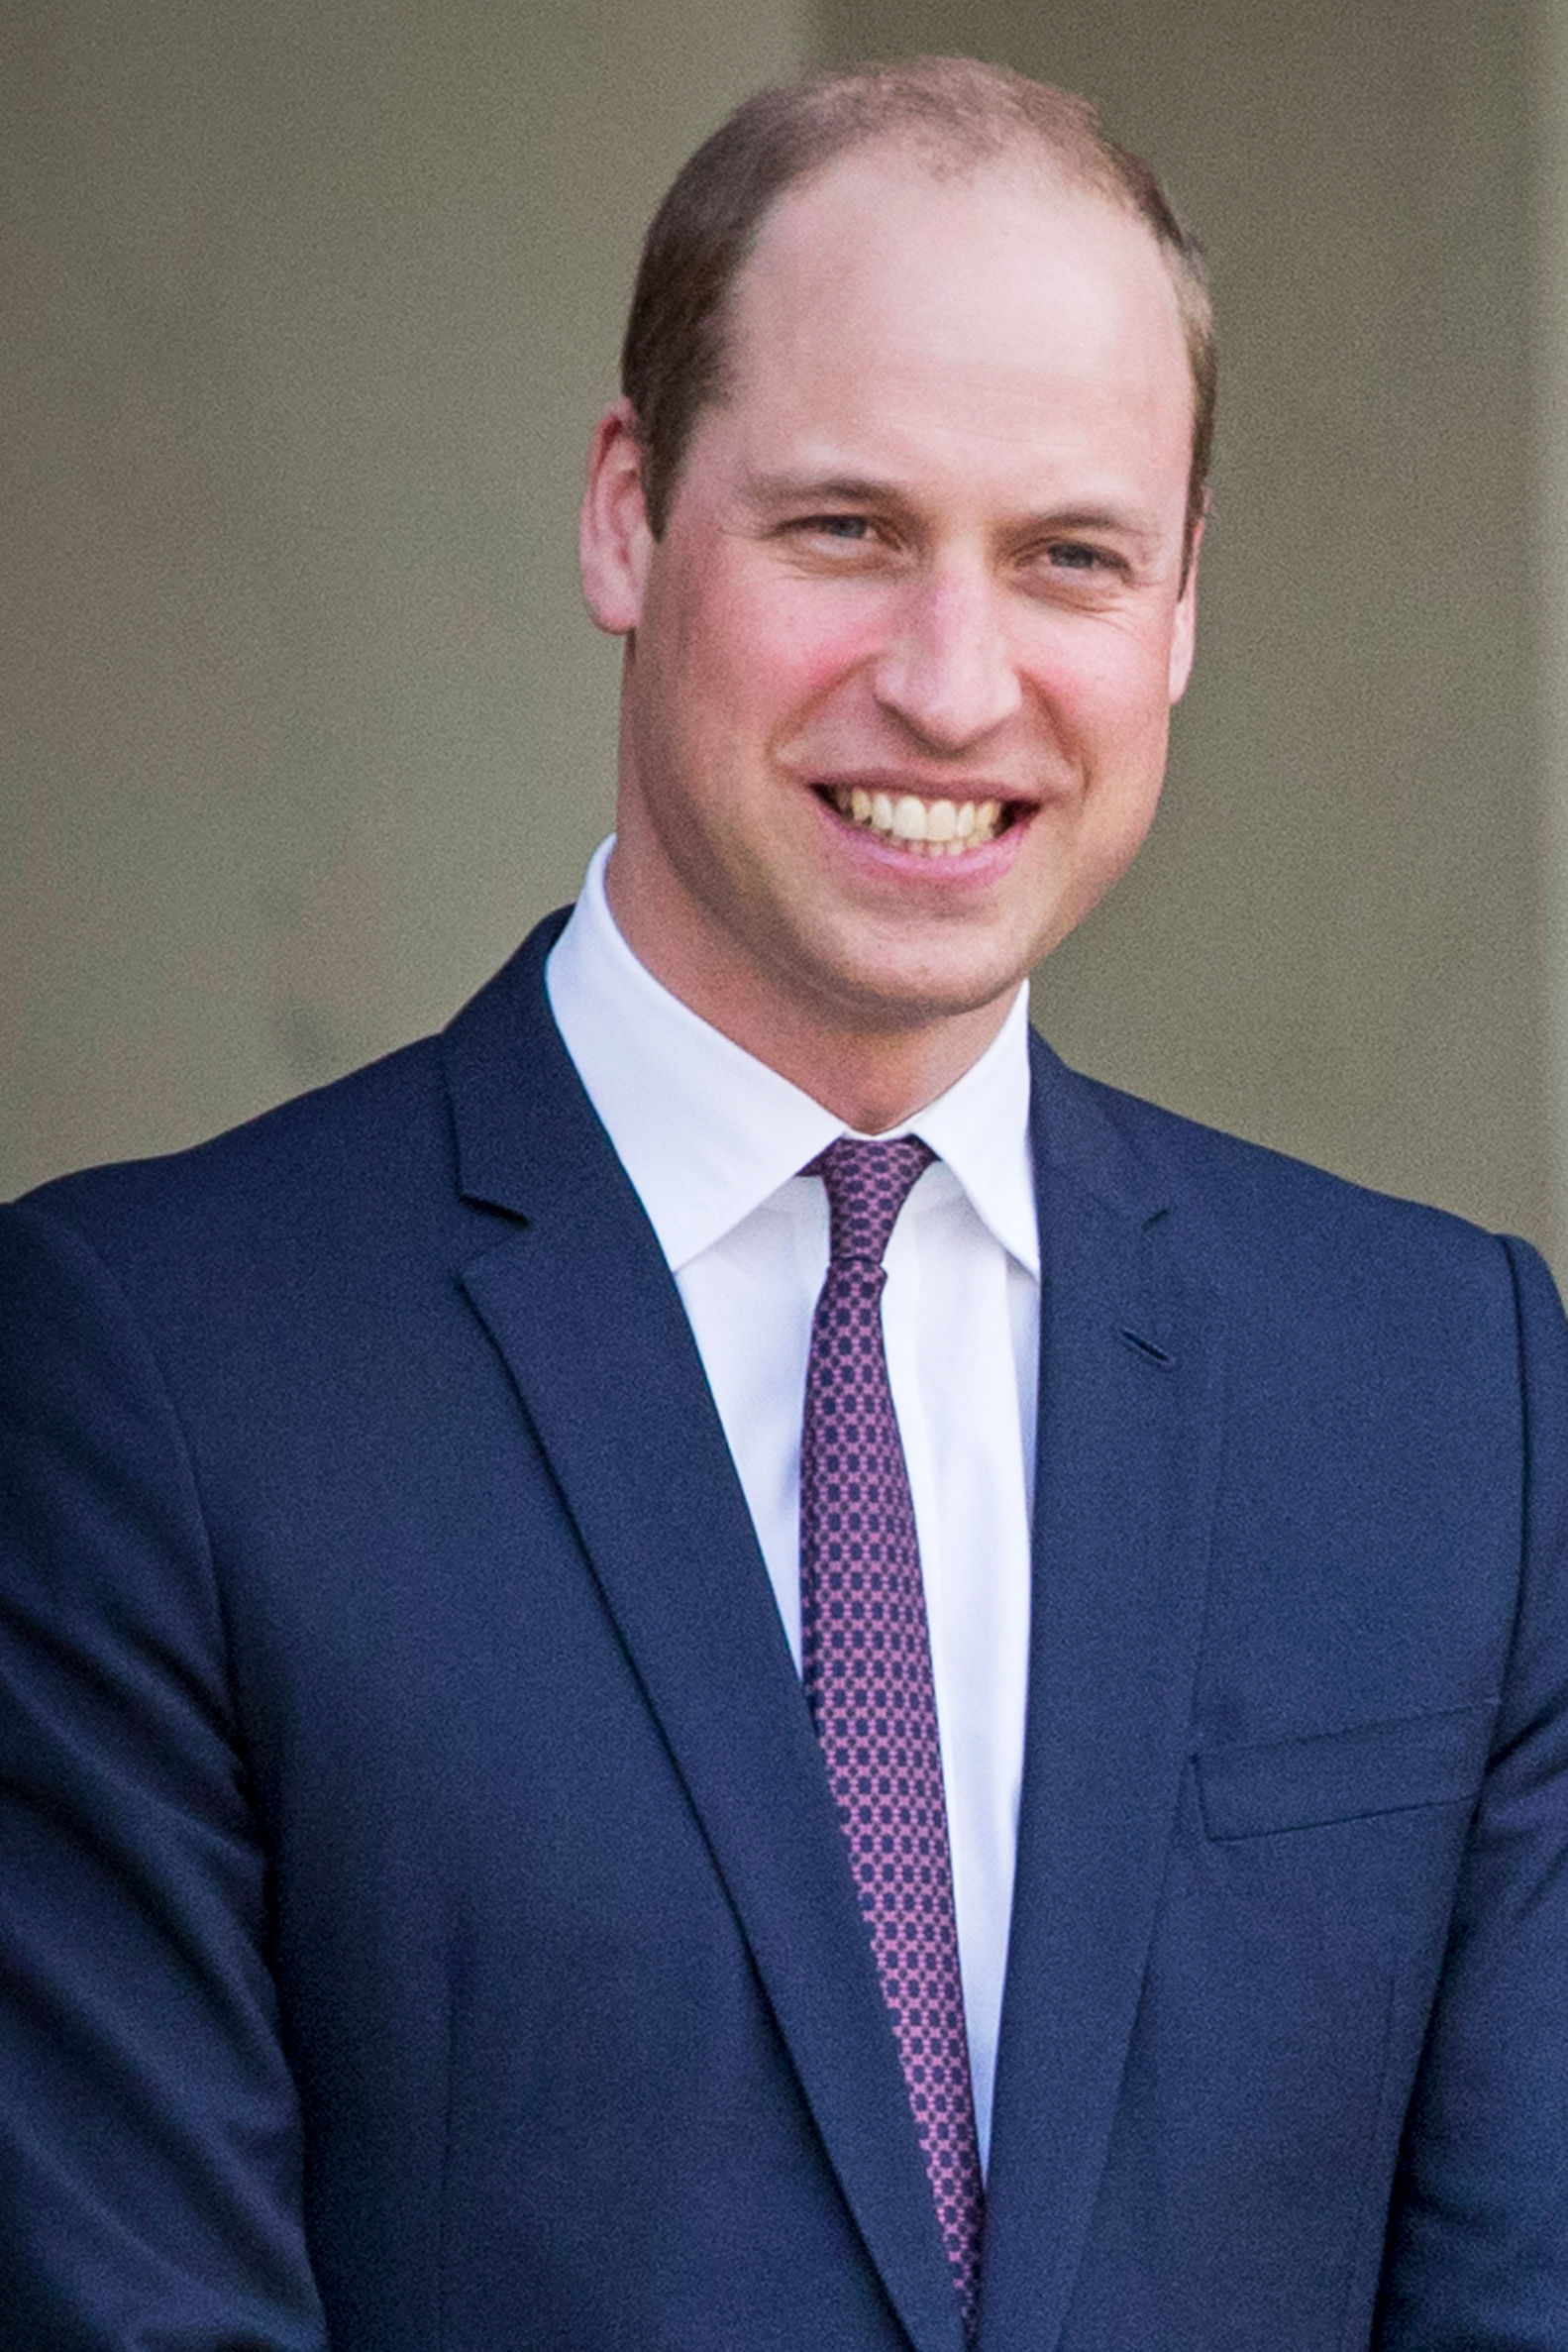 Prince William Finally Bites the Bullet, Shaves His Head